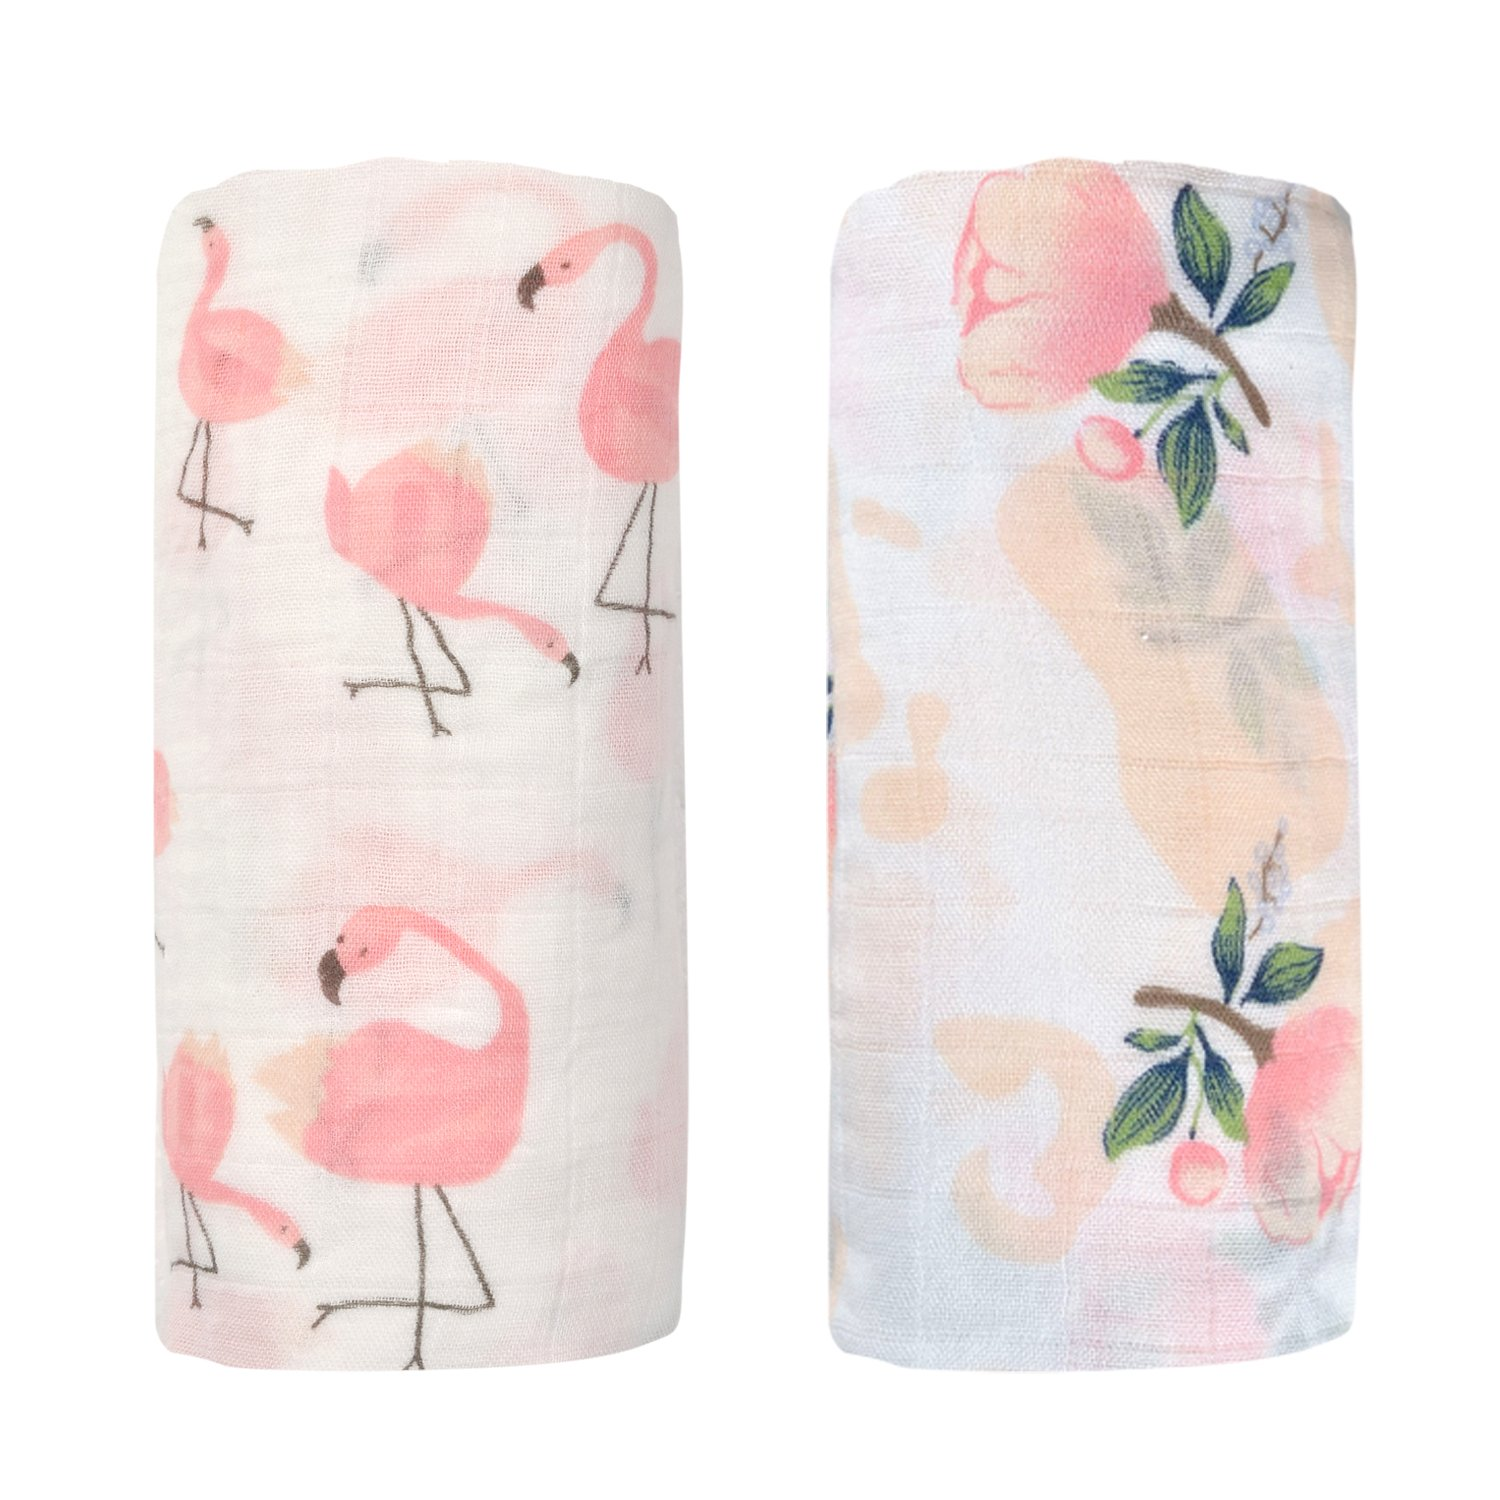 Final Home 2 Pack Bamboo Muslin Swaddle Blanket, Infant Receiving Swaddle Wrap for Shower Gift (Flamingo & Floral)